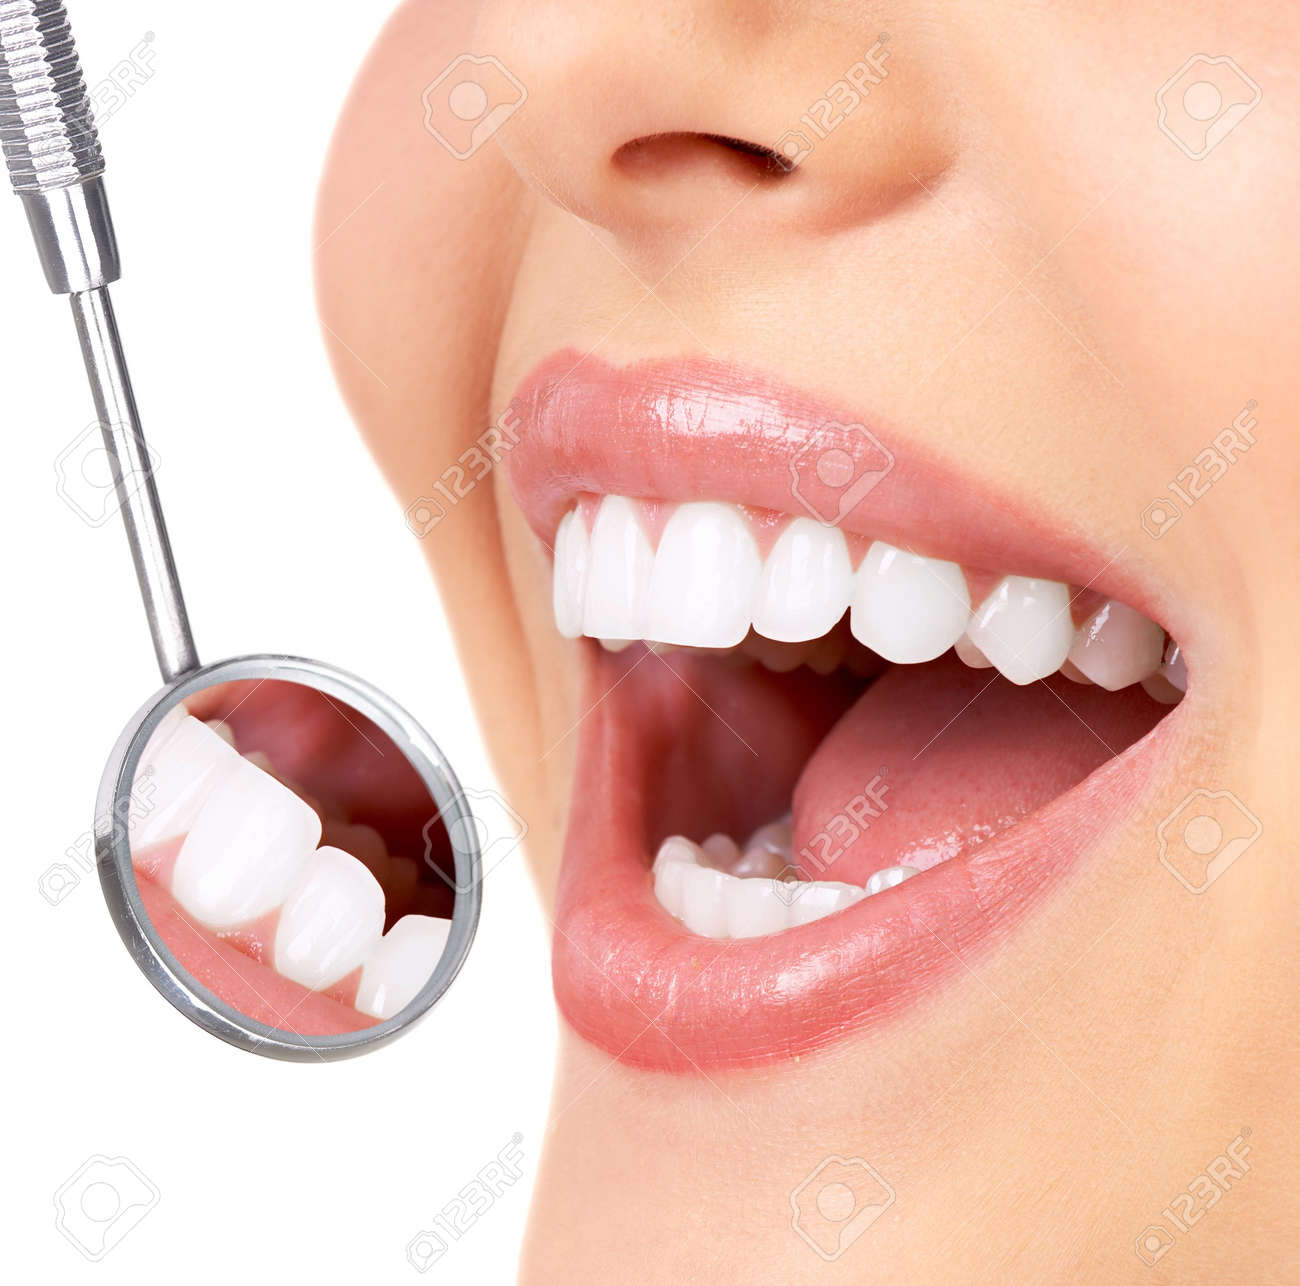 Healthy woman teeth and a dentist mouth mirror Stock Photo - 7566653